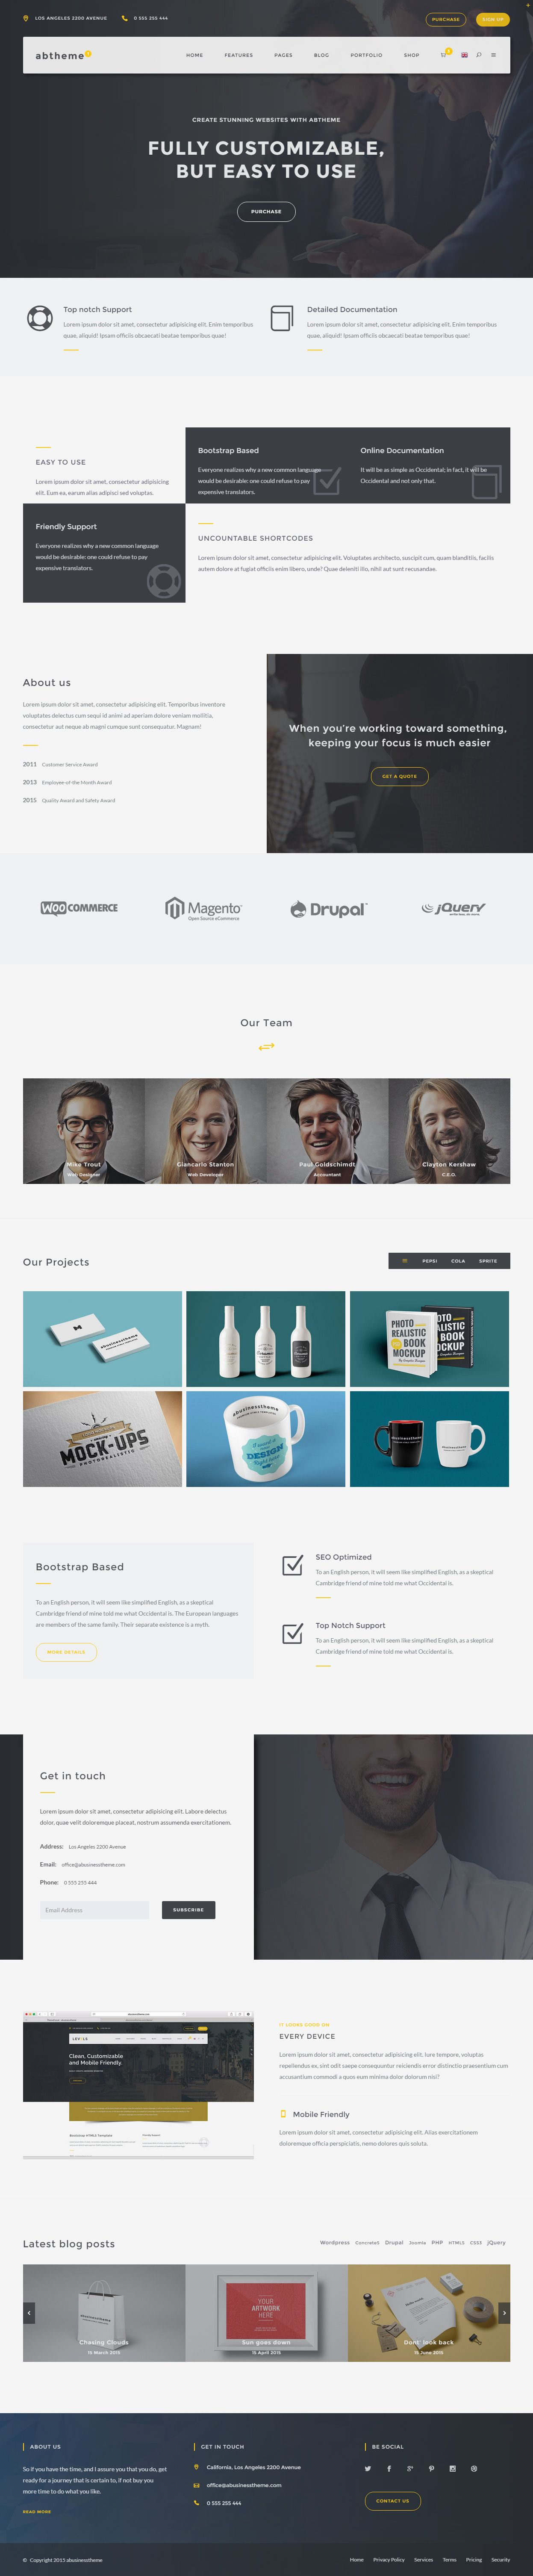 ABT is Premium Responsive Retina Parallax Multipurpose #template ...